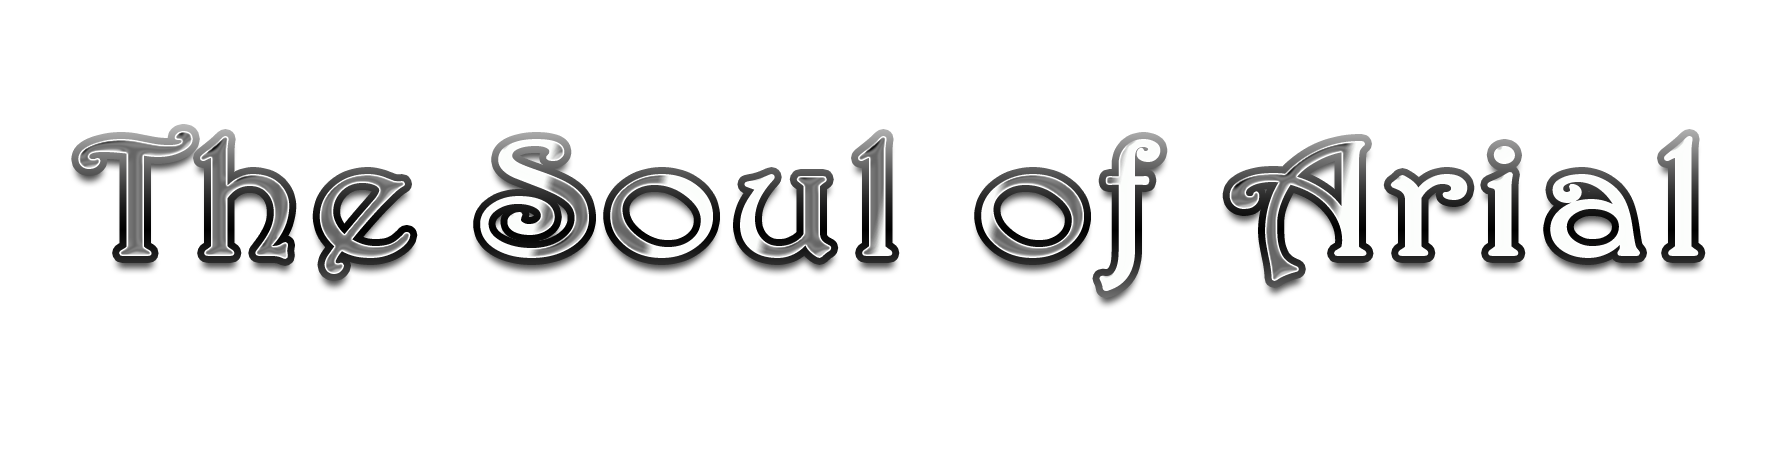 Header for Soul of Arial series